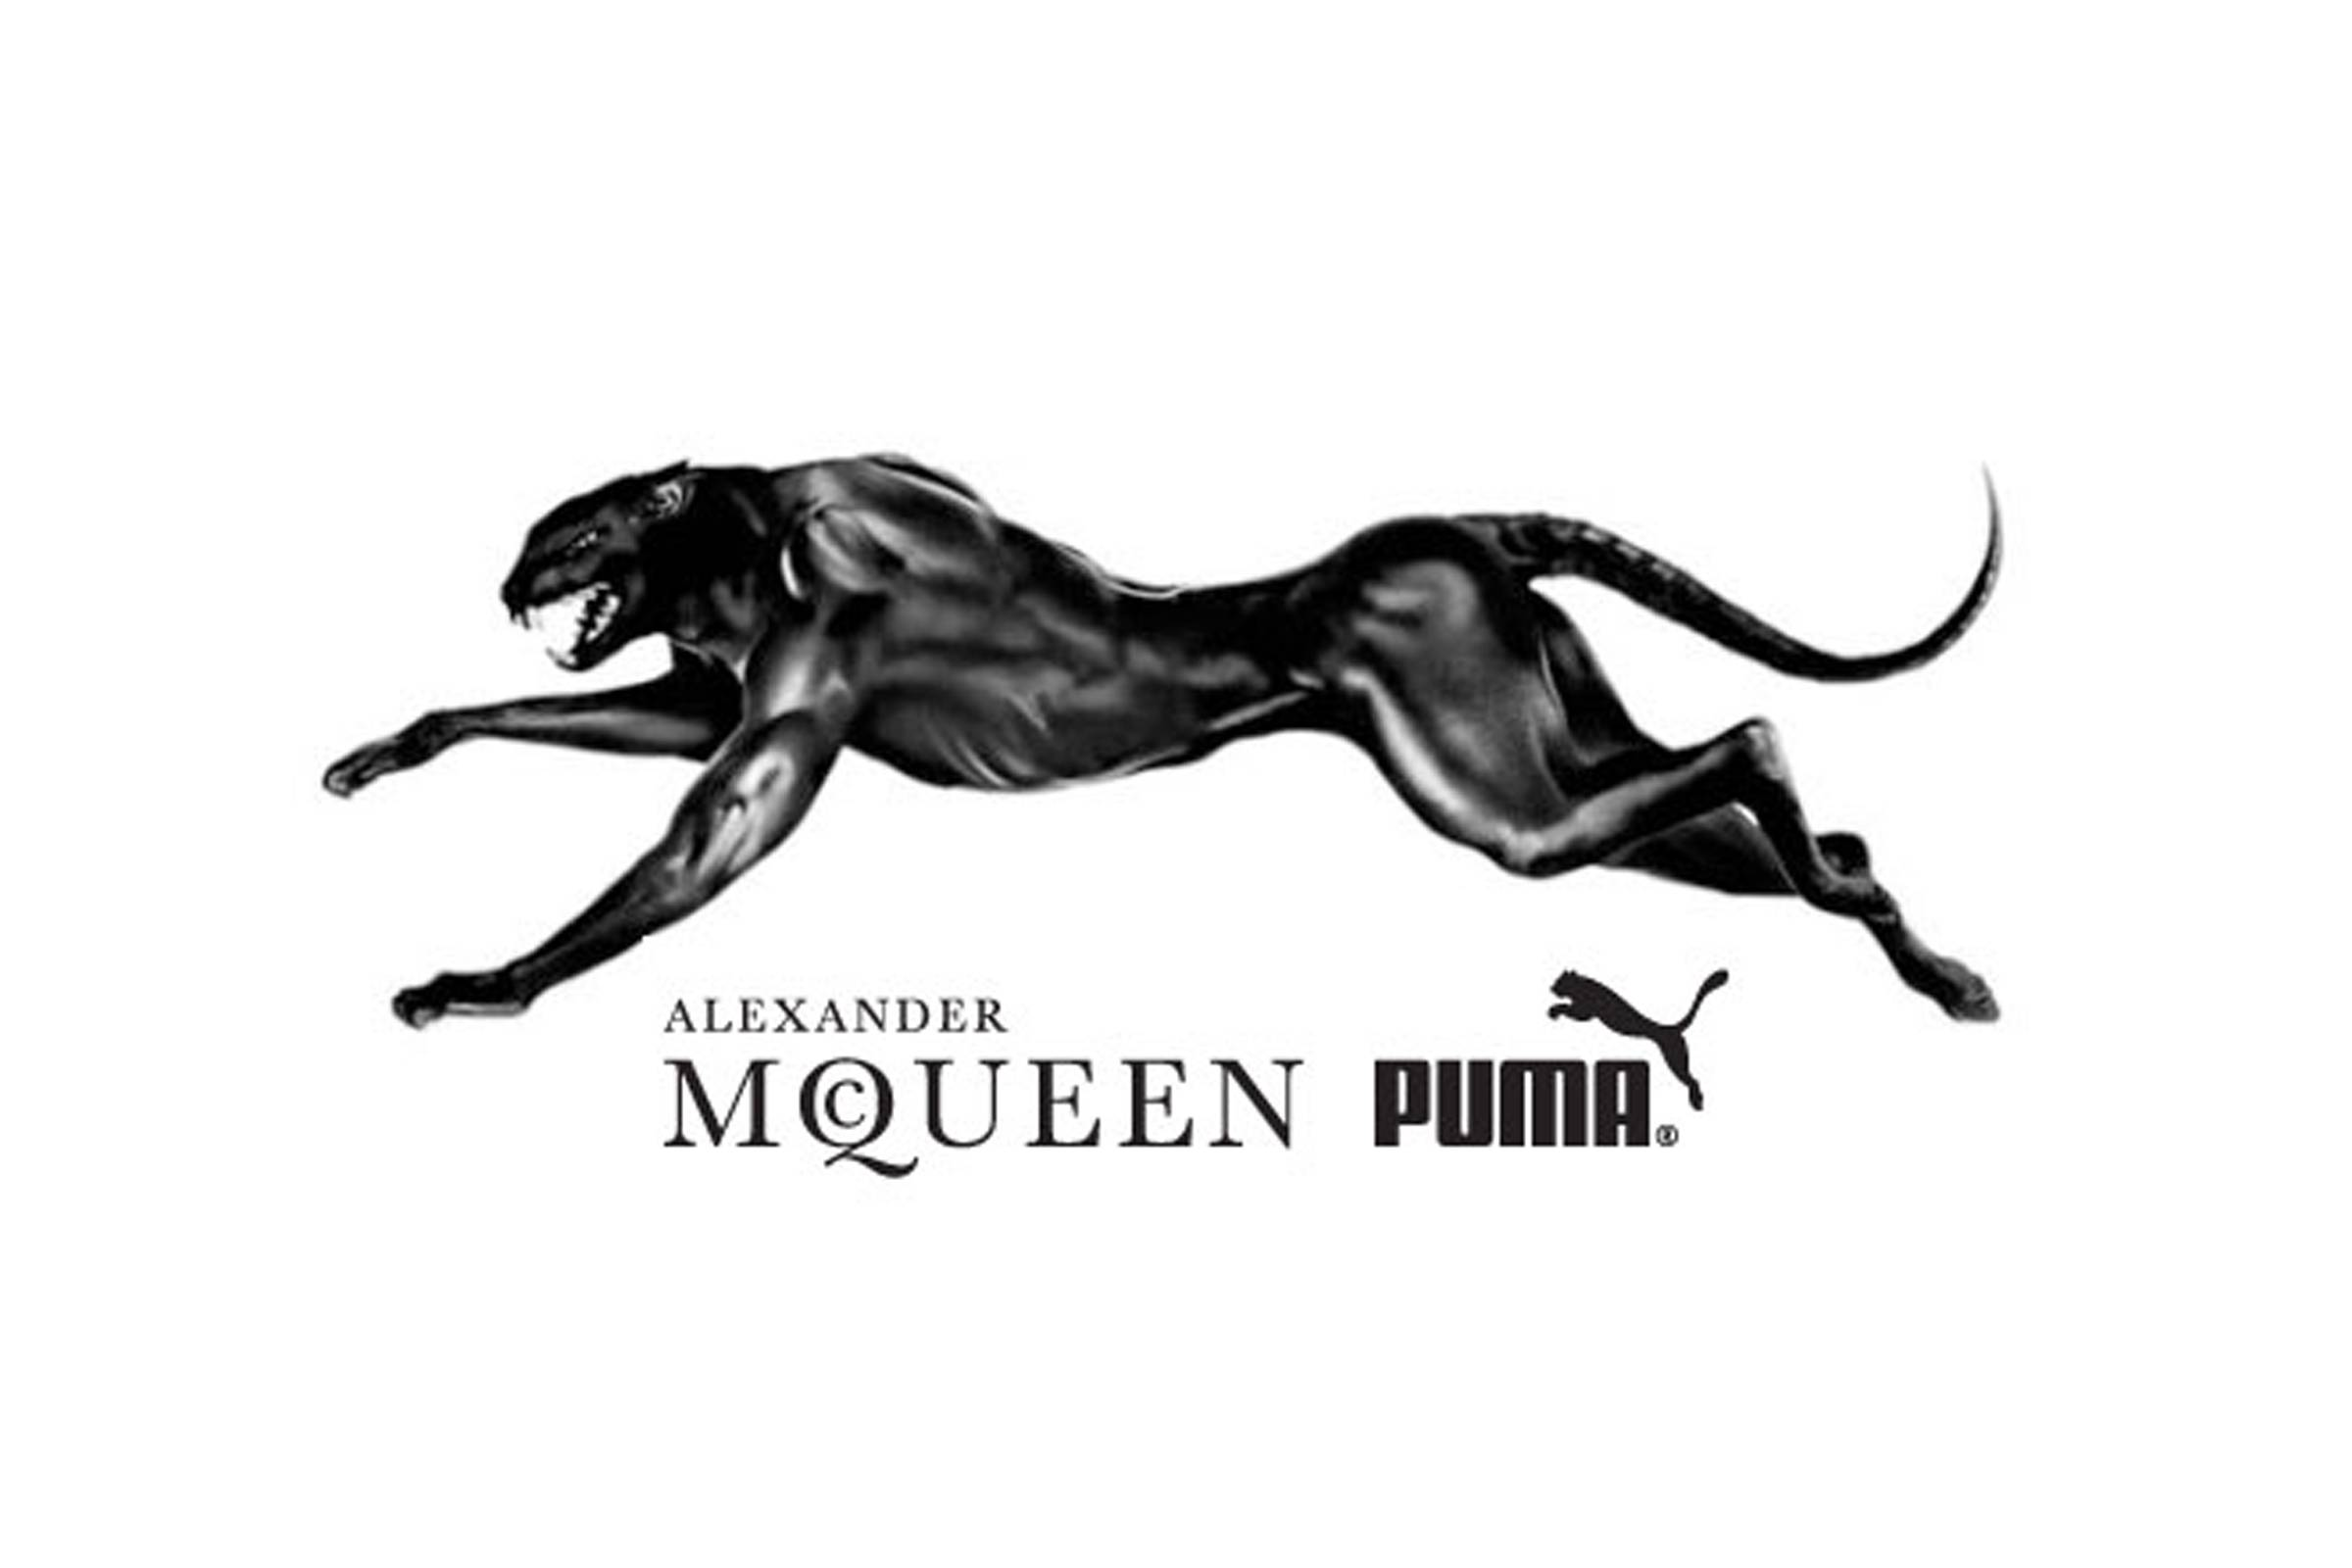 How Puma's Collab with Alexander McQueen Changed Luxury Sneakers